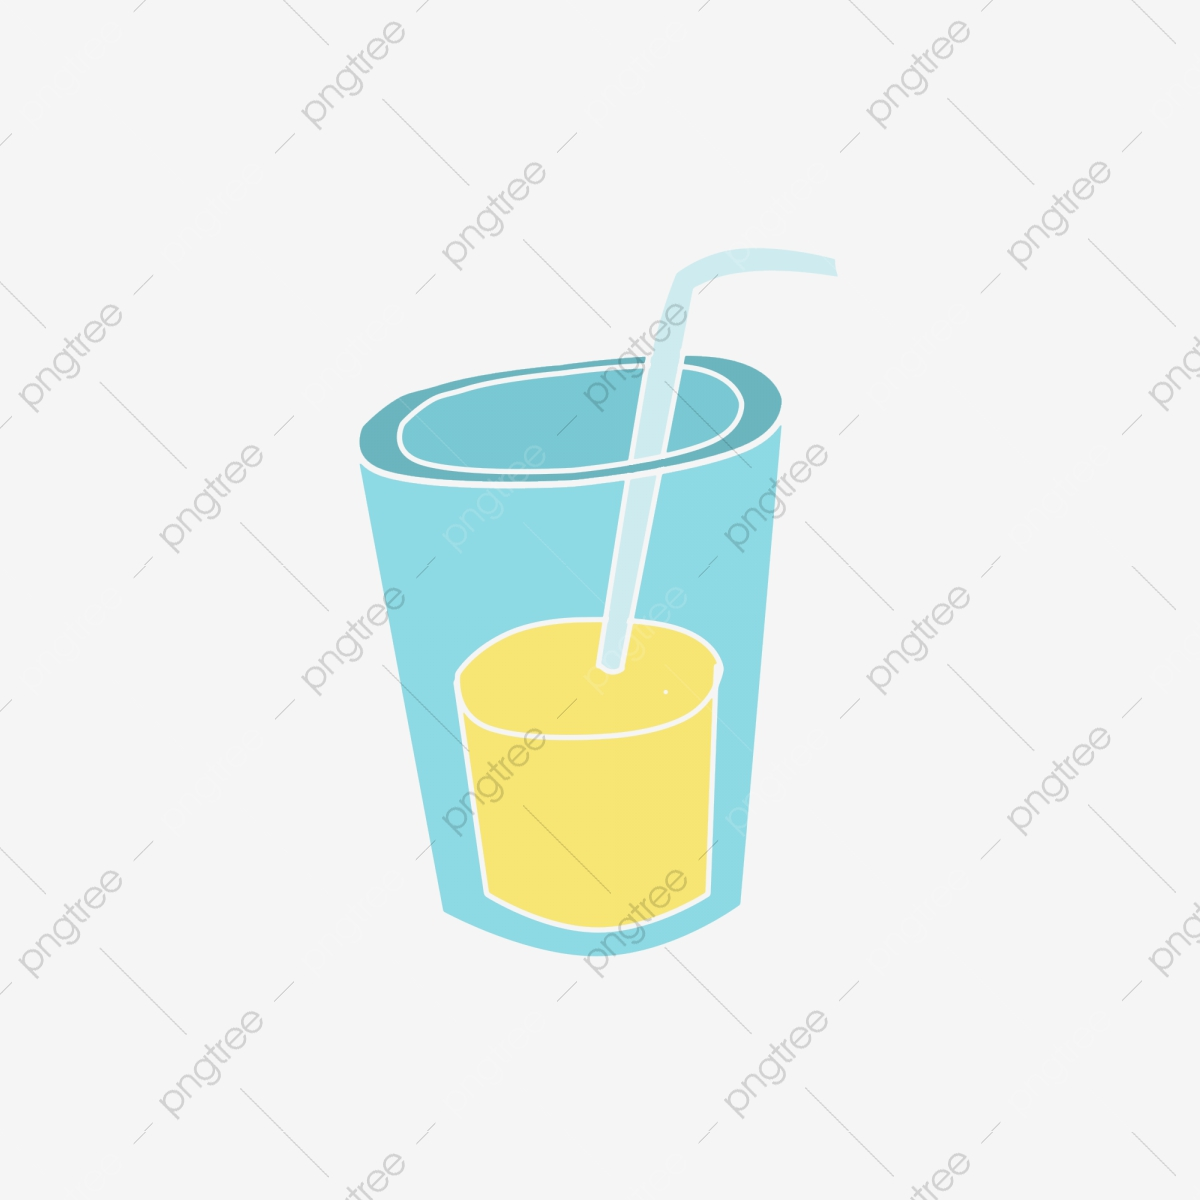 hight resolution of commercial use resource upgrade to premium plan and get license authorization upgradenow fashion illustration soft drink orange juice fashion clipart